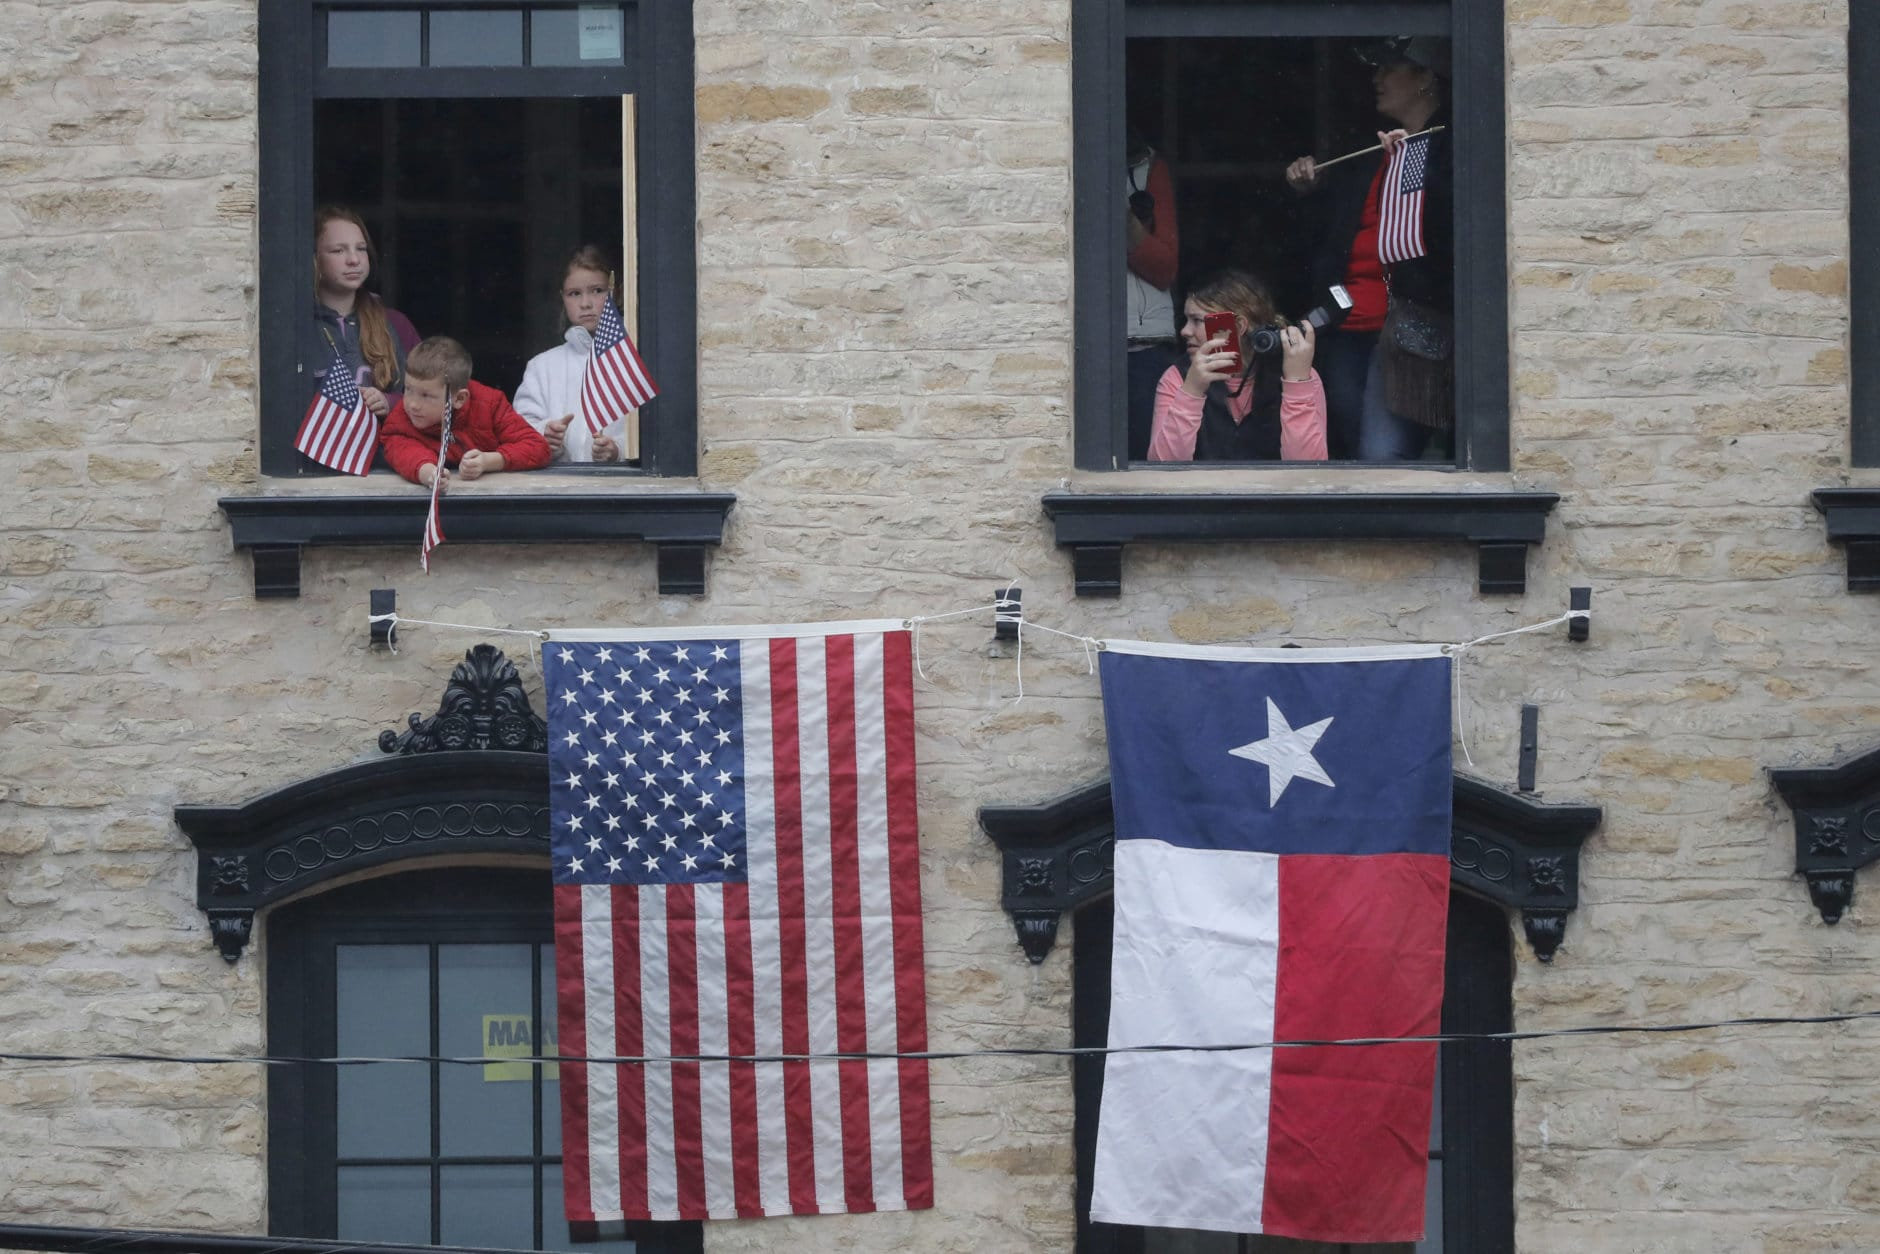 People look from a building as they pay their respects as the train carrying the casket of former President George H.W. Bush passes through Navasota, Texas Thursday, Dec. 6, 2018. (AP Photo/Gerald Herbert)